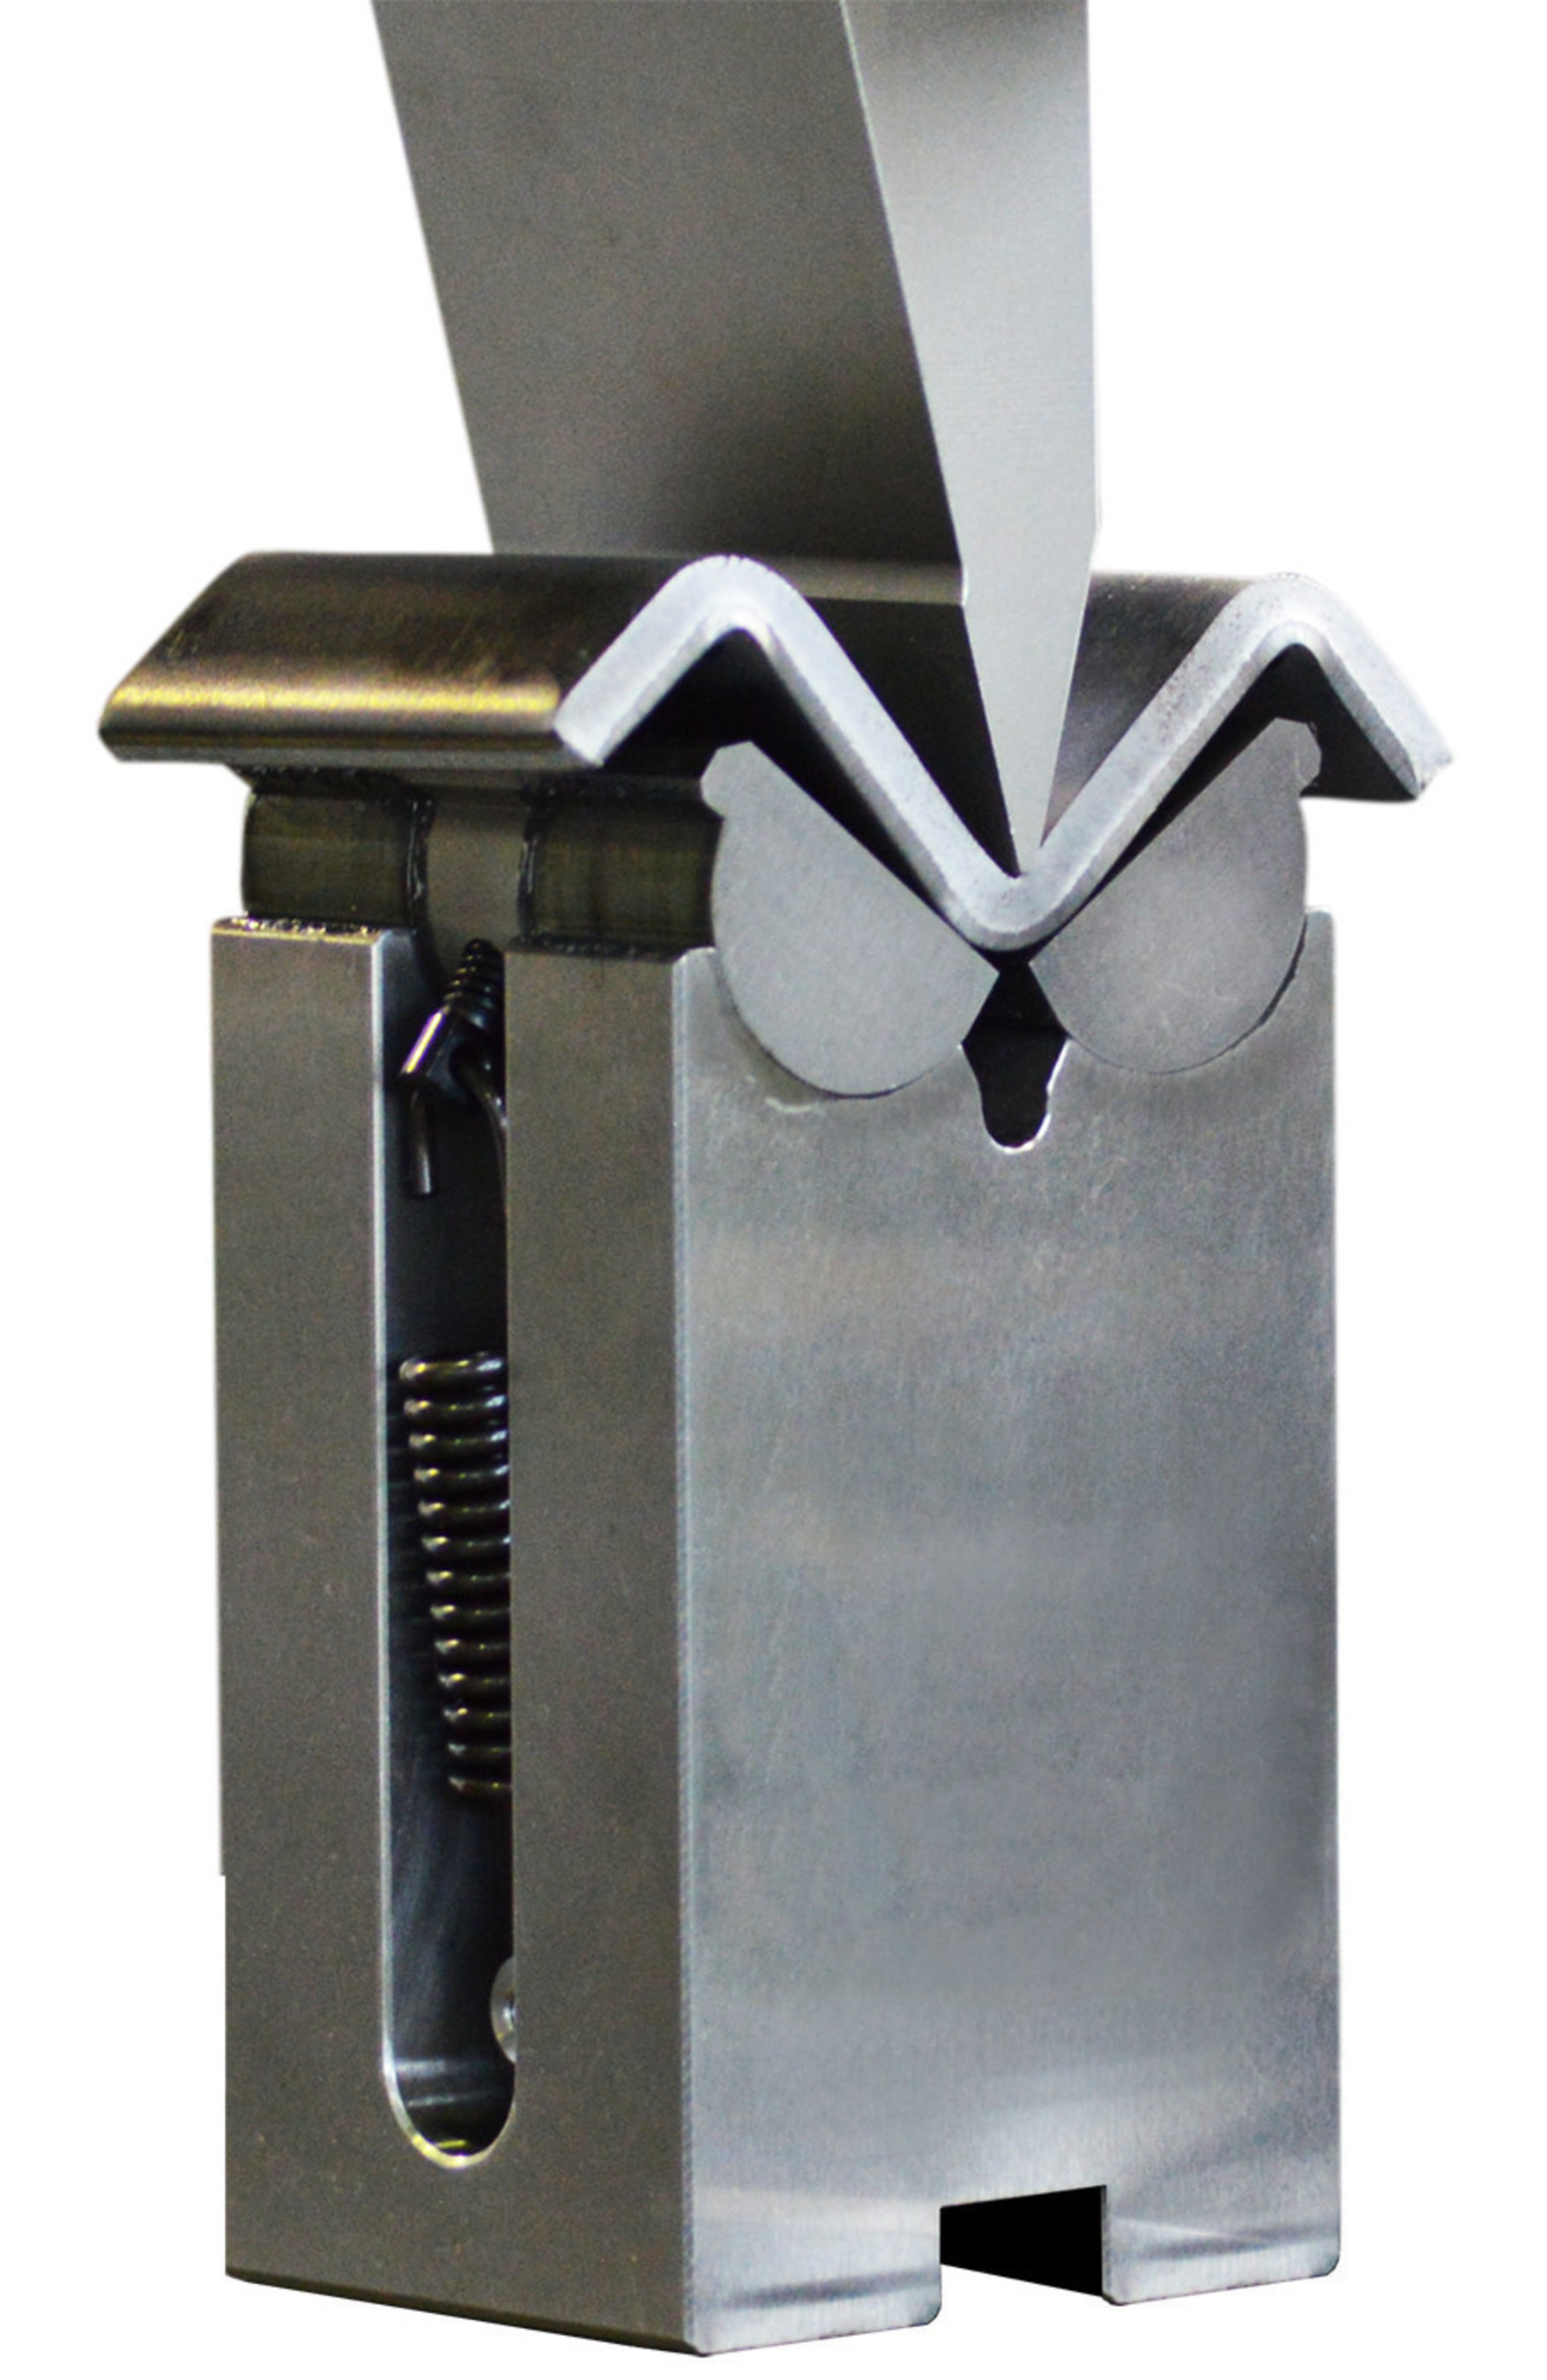 Mate Precision Tooling has expanded its press brake tooling product line with the addition of Mate CleanBend(TM) forming technology. The CleanBend tool is available in both European Precision Style and Wila Trumpf Style tooling and can be adapted to American Precision Style tooling.